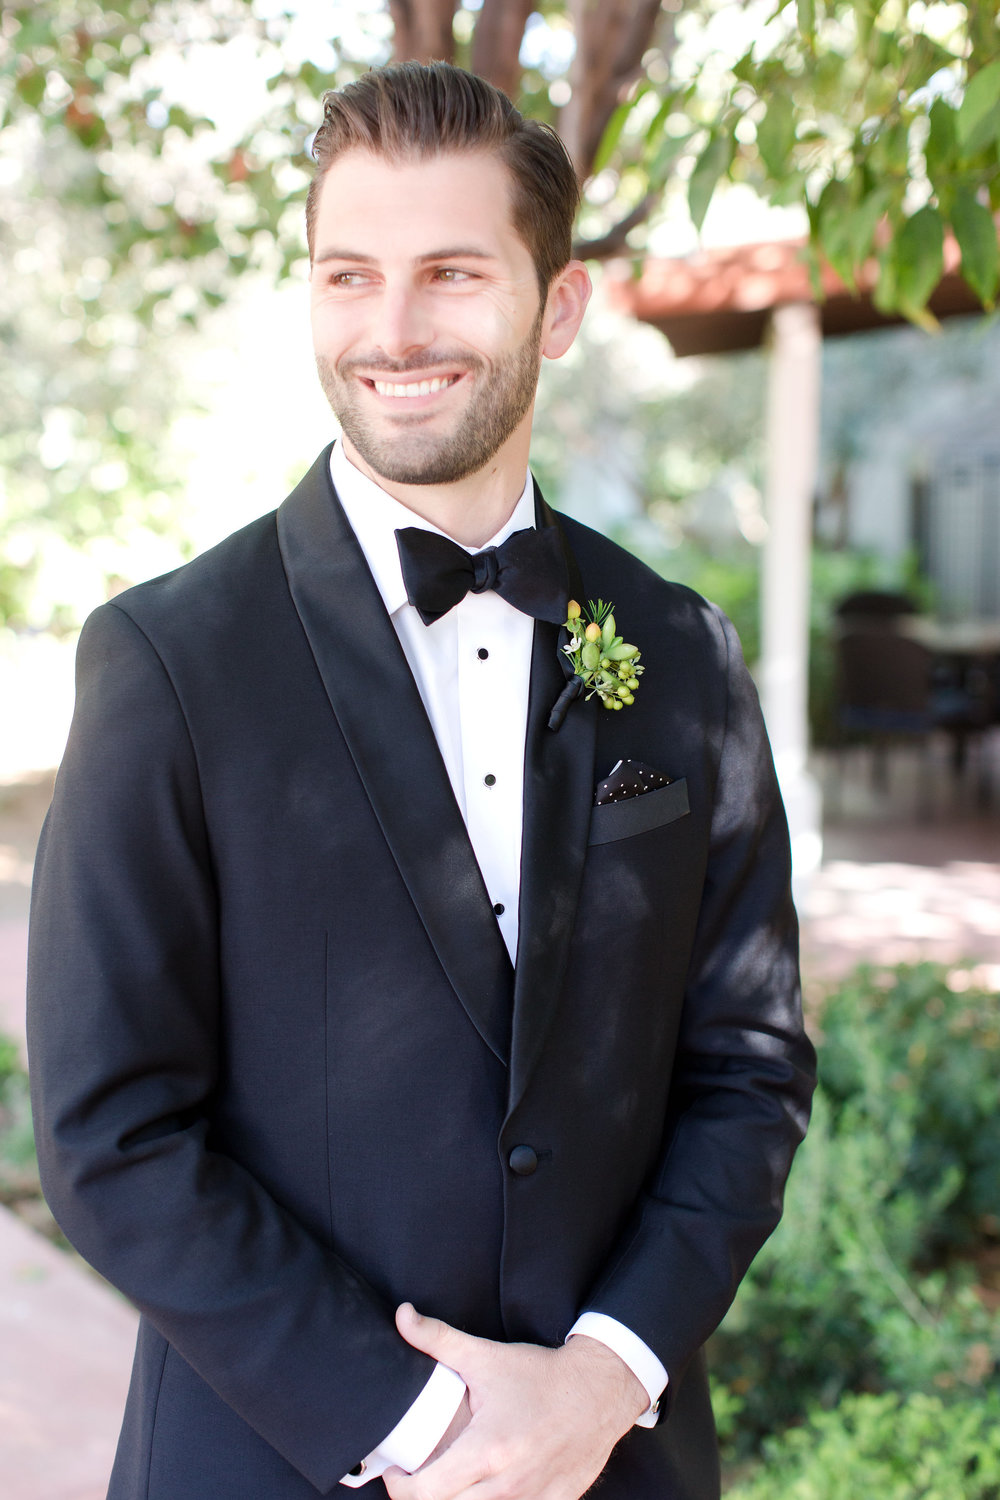 groom wedding details  , peach and mint wedding, blush and green wedding, Arizona Phoenix Scottsdale wedding planner, first look, black tux, boutonniere, desert wedding